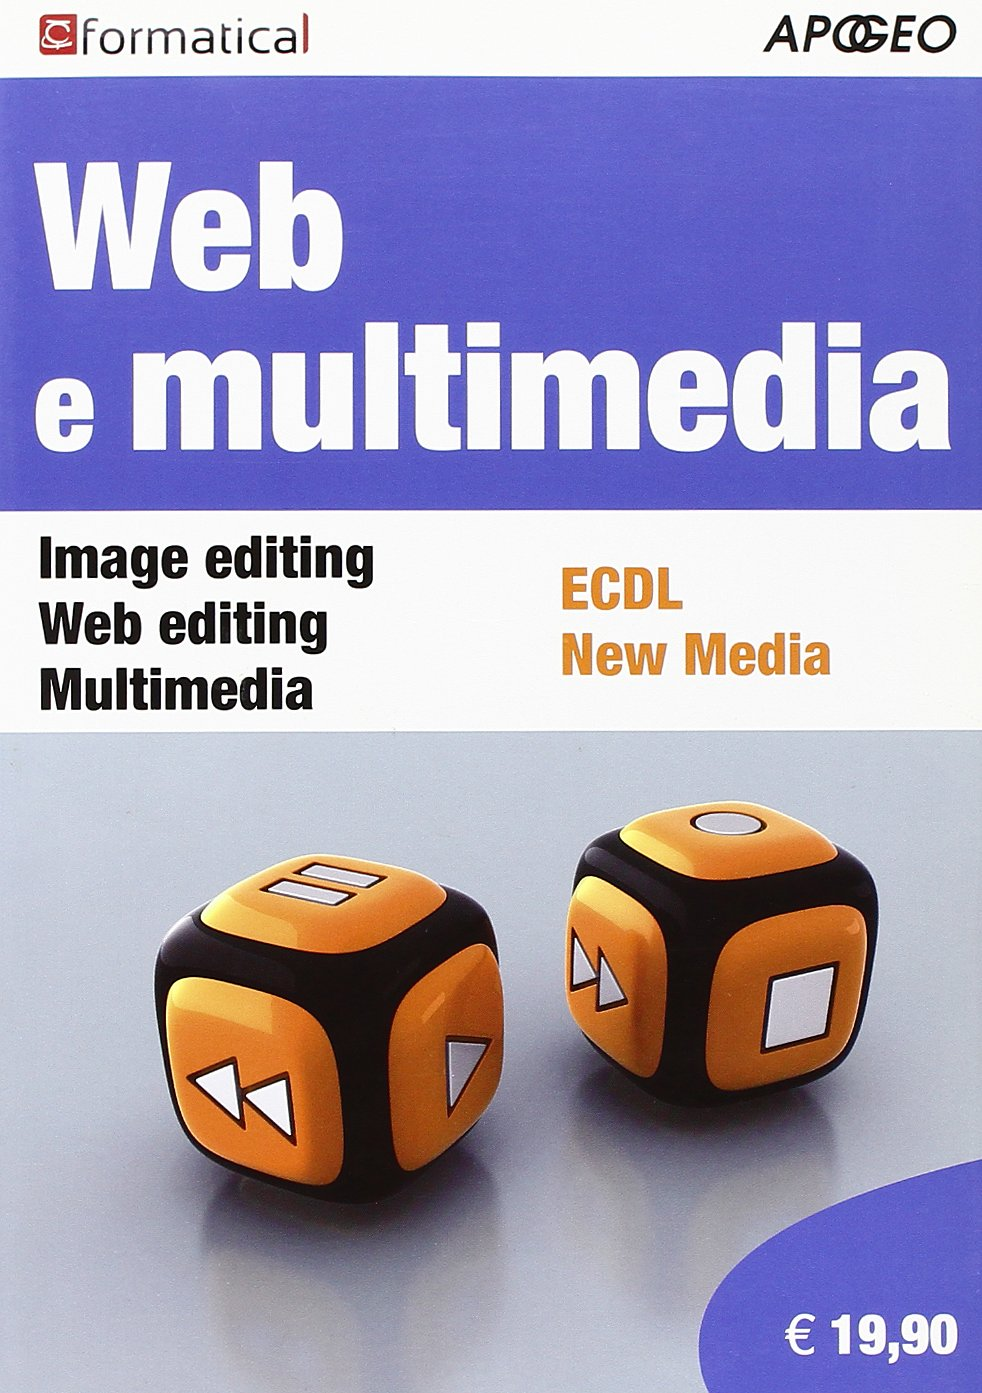 Web e multimedia Copertina flessibile – 19 set 2013 Formatica Apogeo Education 8838787344 Grafica e web-design